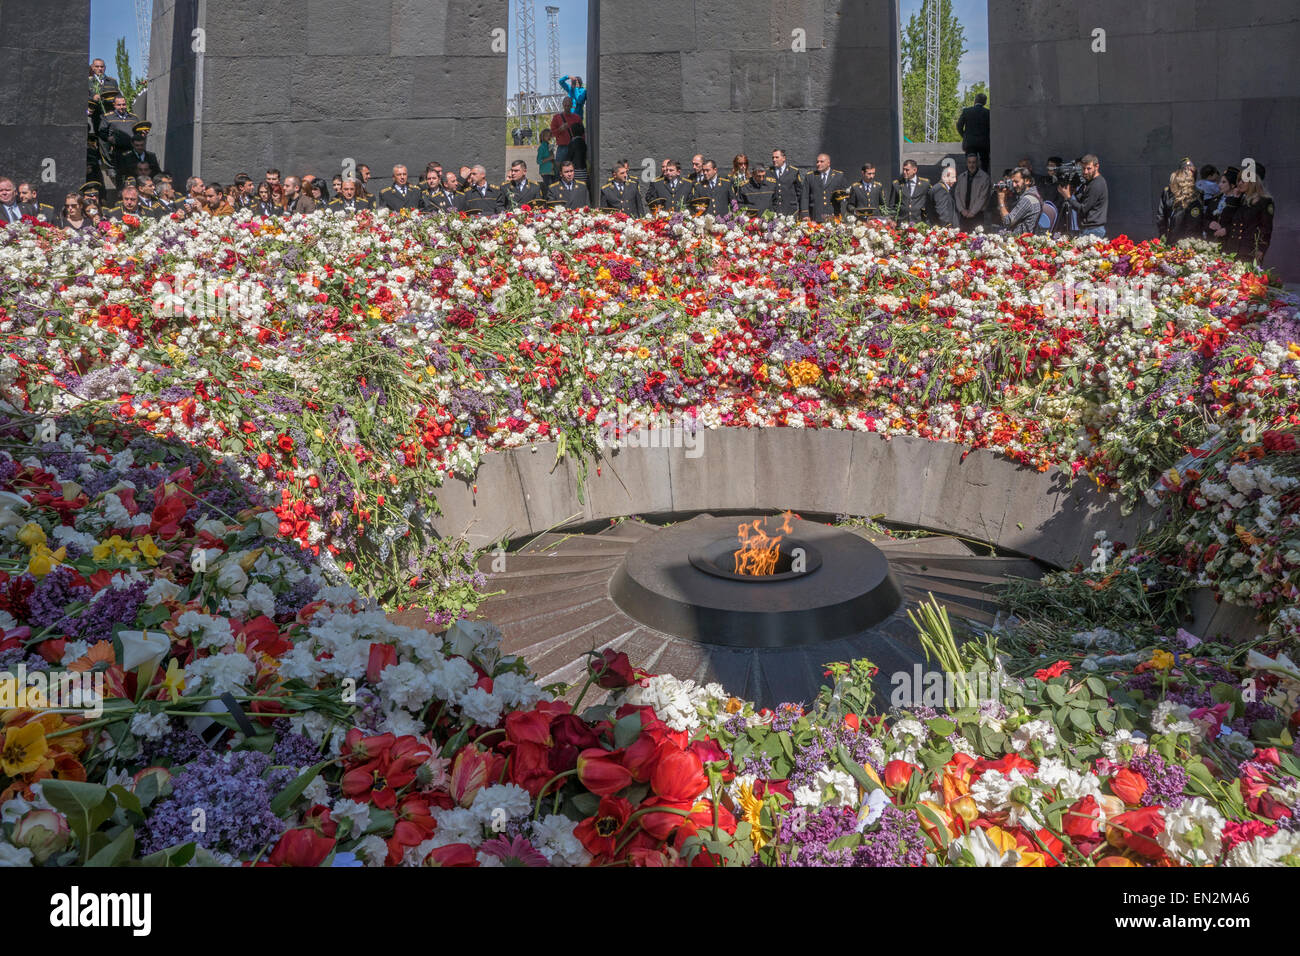 Yerevan, Armenia. 25th Apr, 2015. Armenian military at commemoration at 100th anniversary of the Armenian genocide Stock Photo